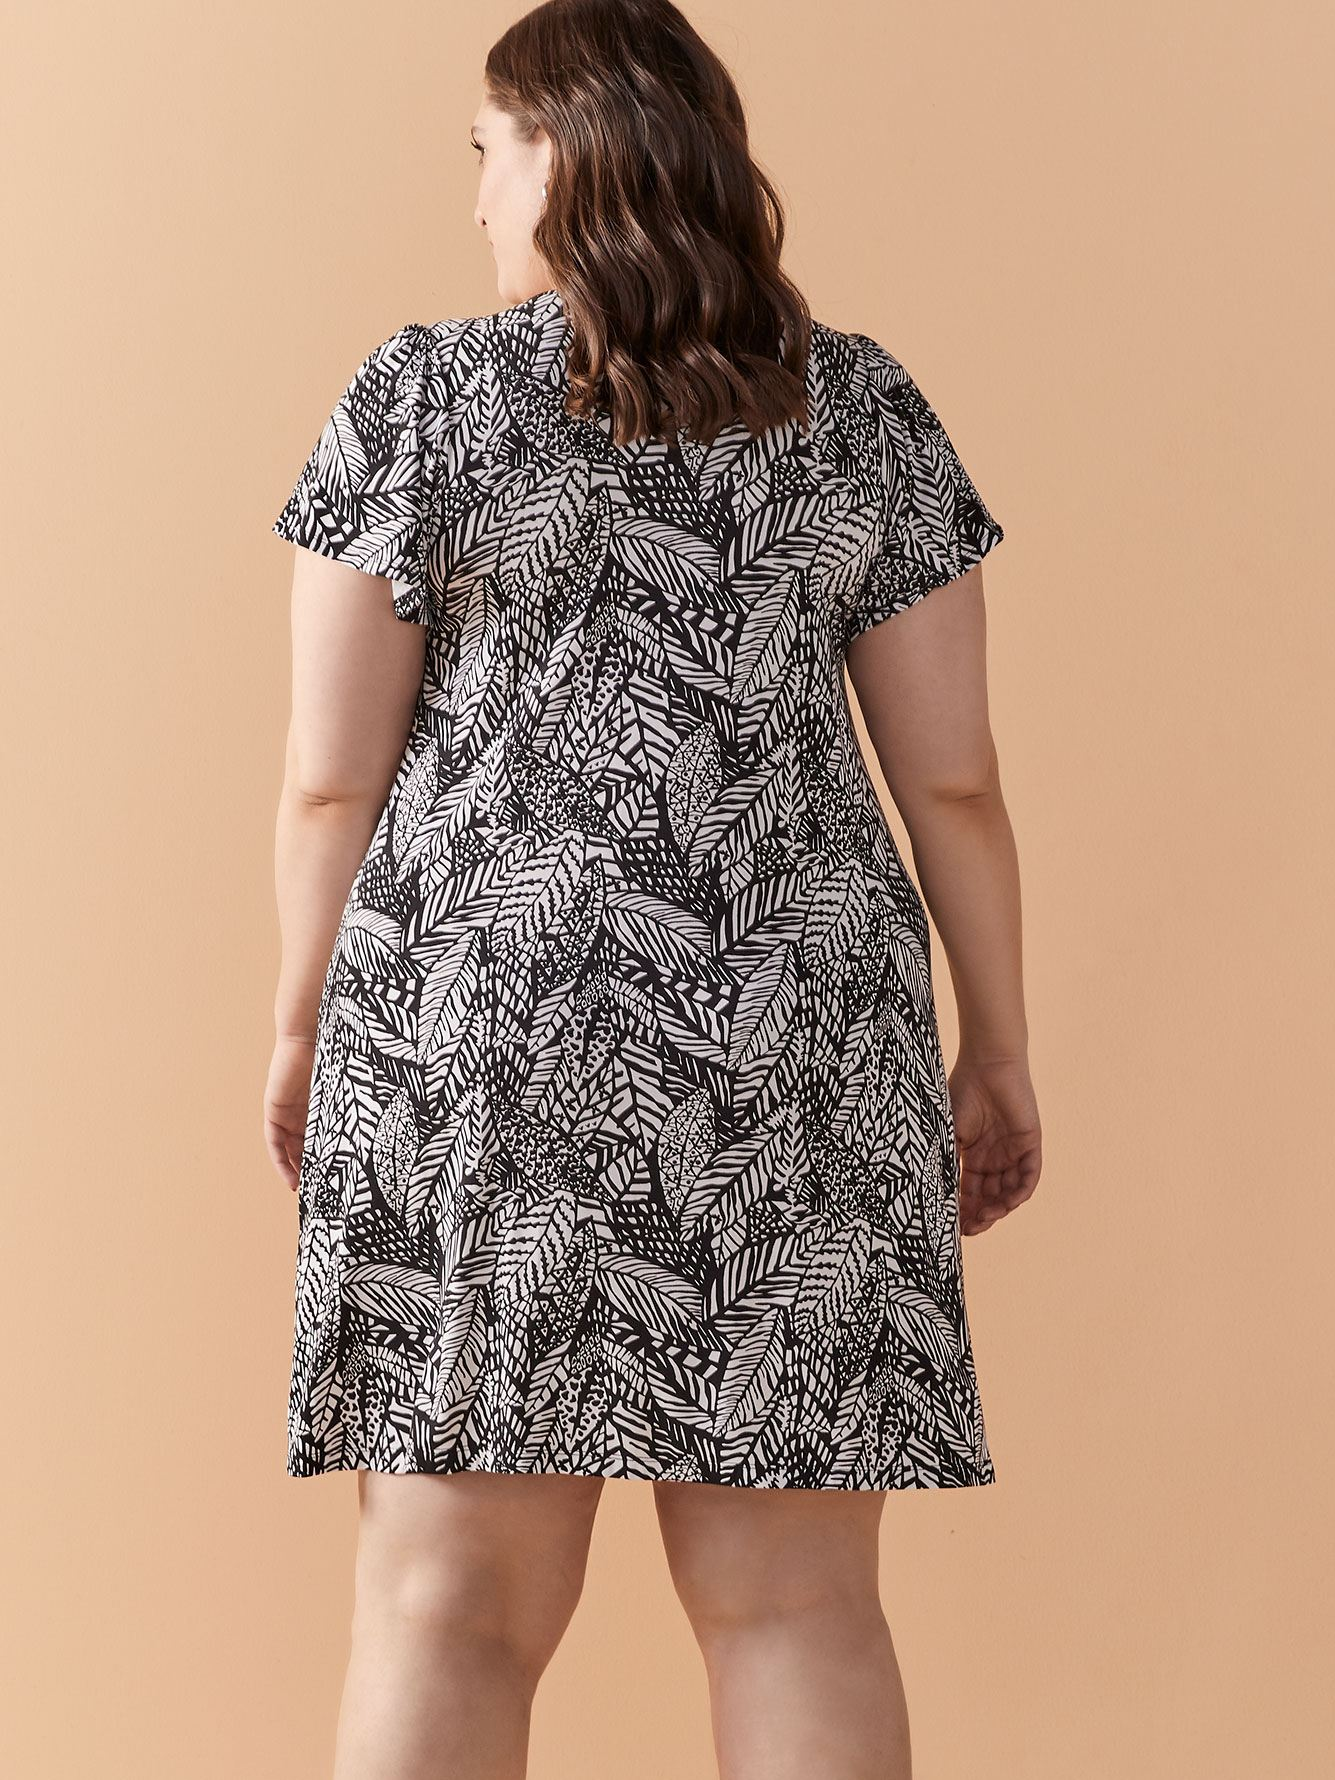 Printed Short Sleeve Dress - In Every Story